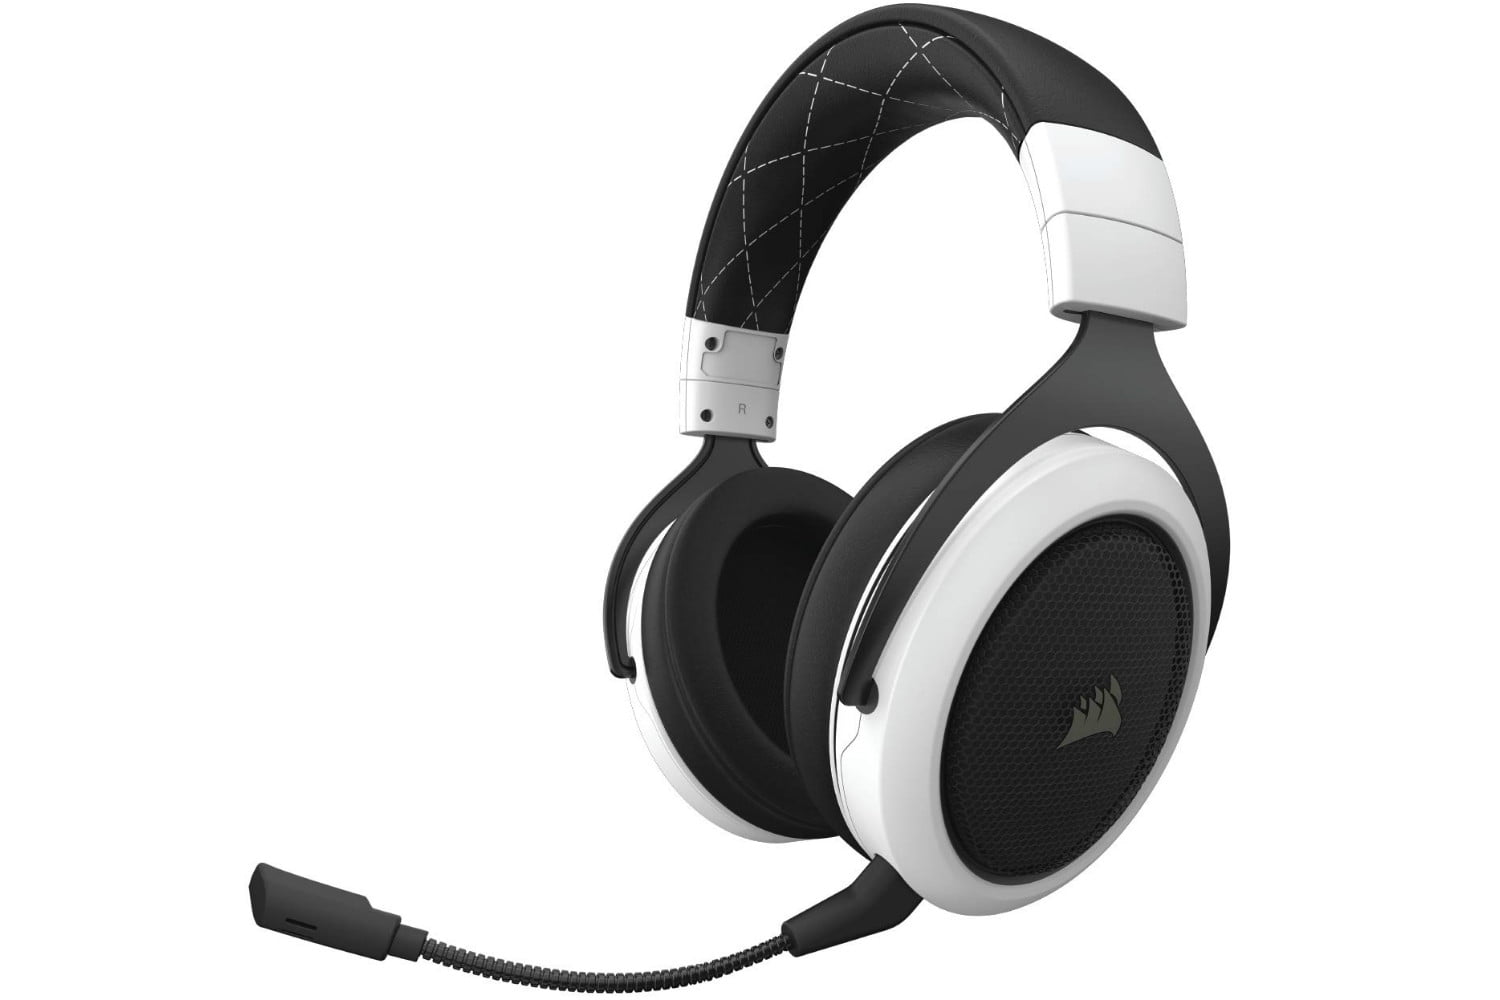 amazon obliterates the price for corsairs hs70 wireless gaming headset corsair  7 1 surround sound discord certified headphon